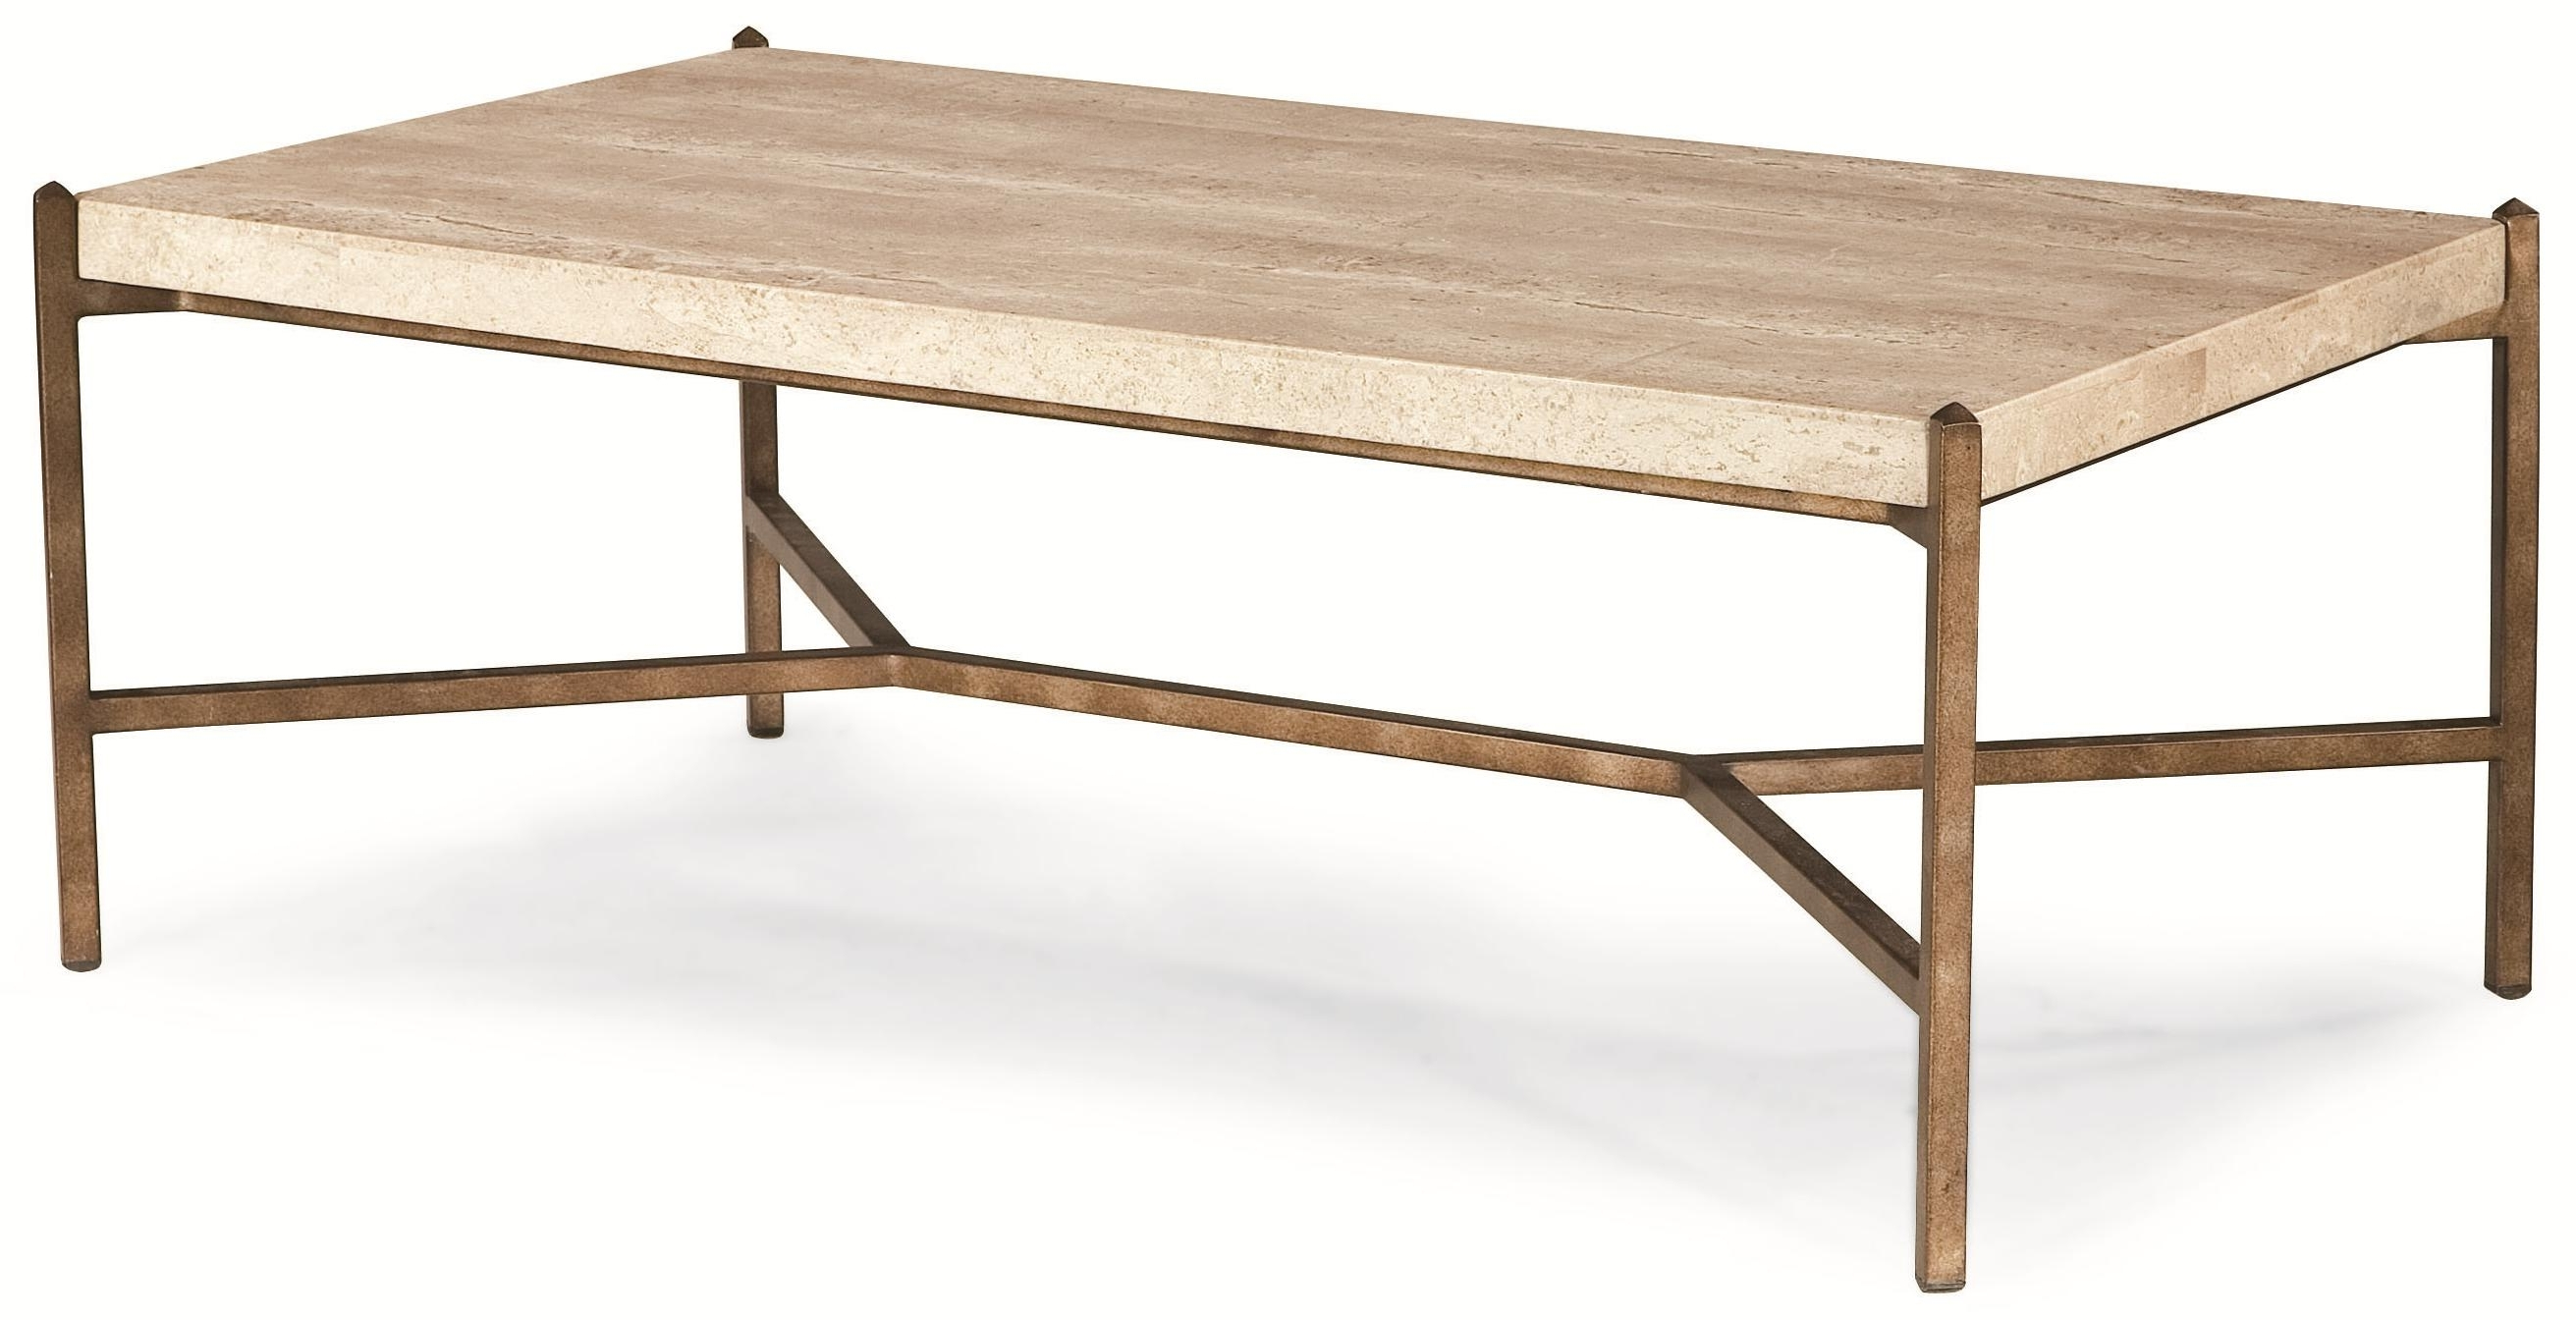 Latest Stone Top Coffee Tables Throughout Thomasville® Cachet 82191 121 Rectangular Coffee Table W/ Travertine (View 12 of 20)